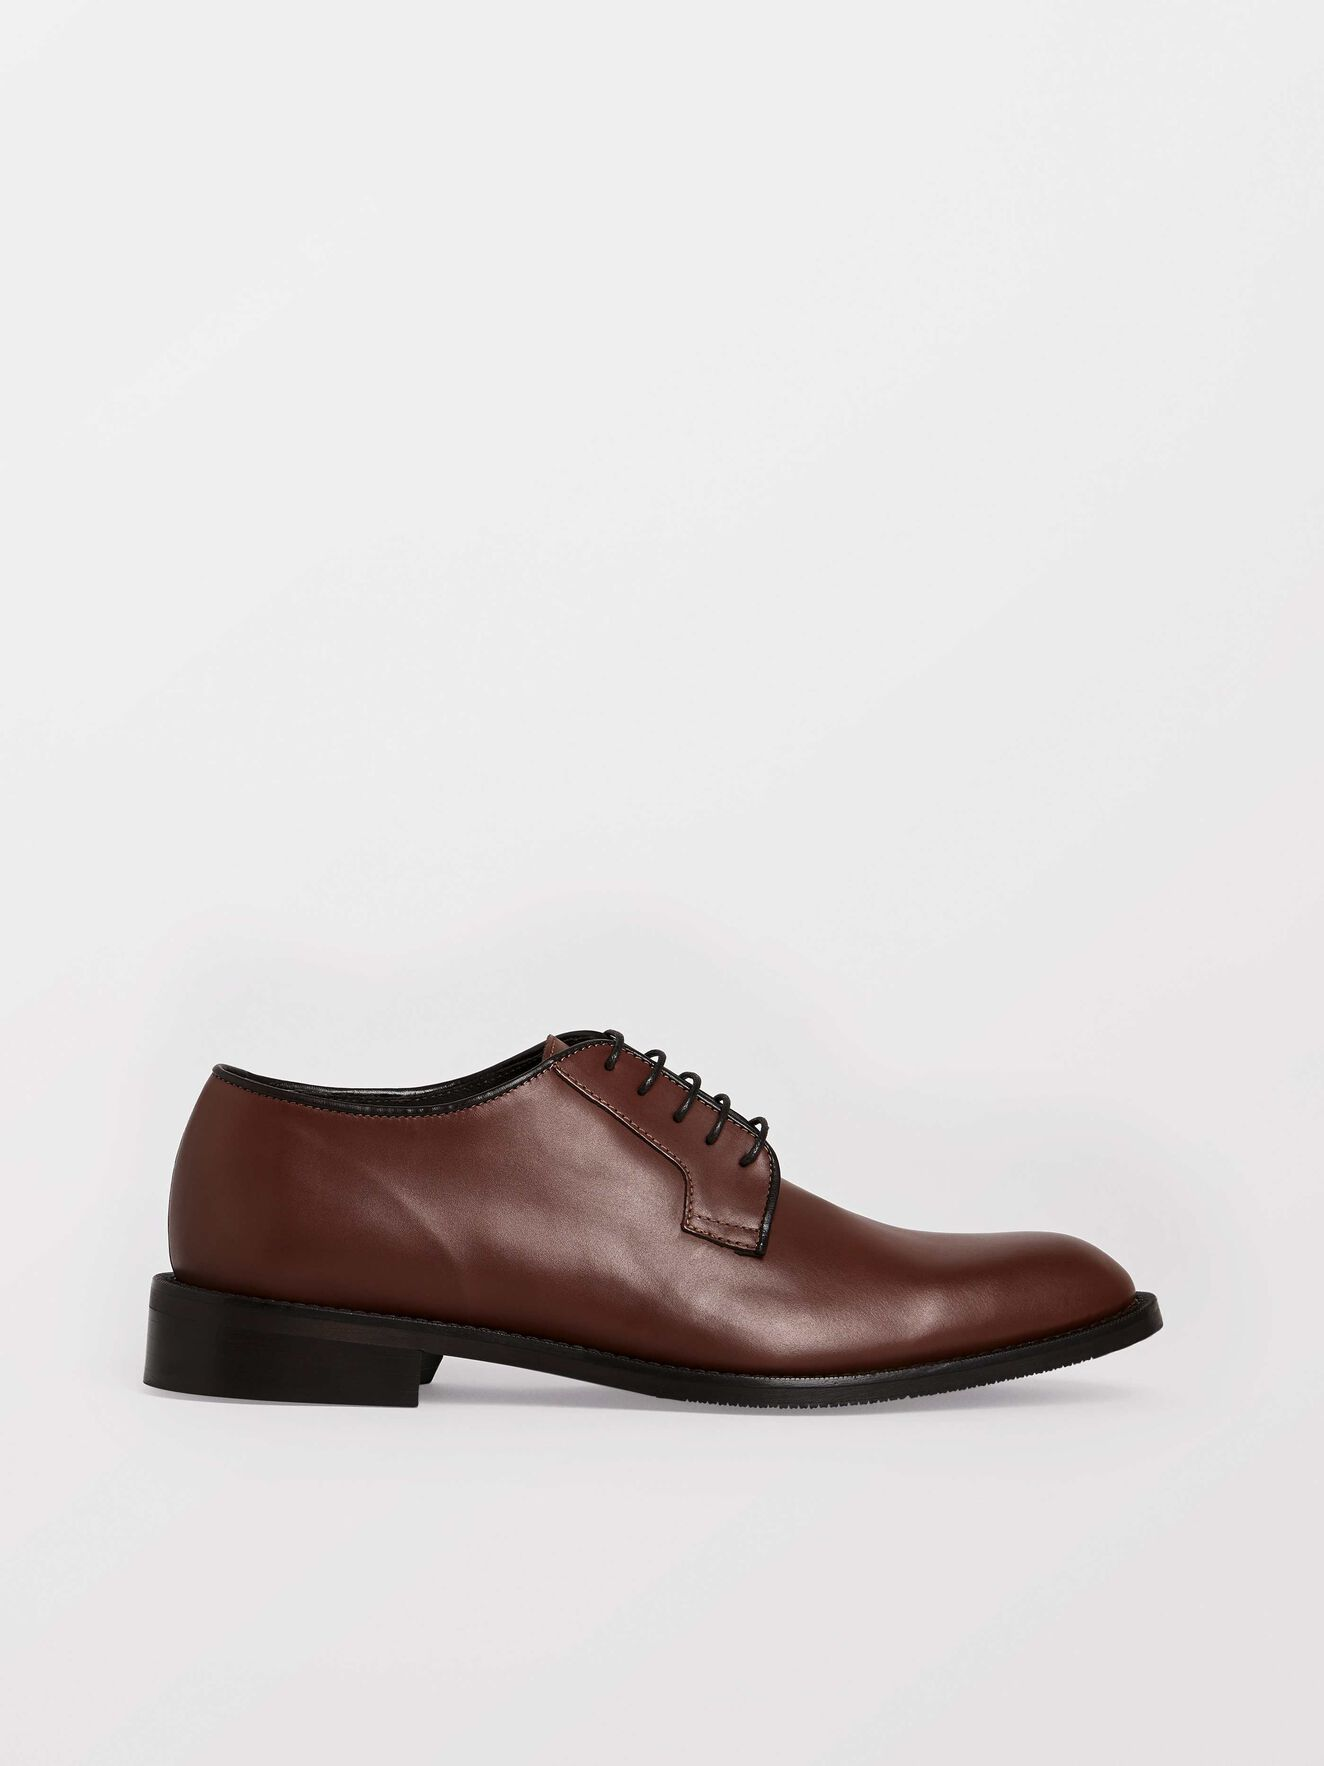 Agaton Schuh in Cognac from Tiger of Sweden